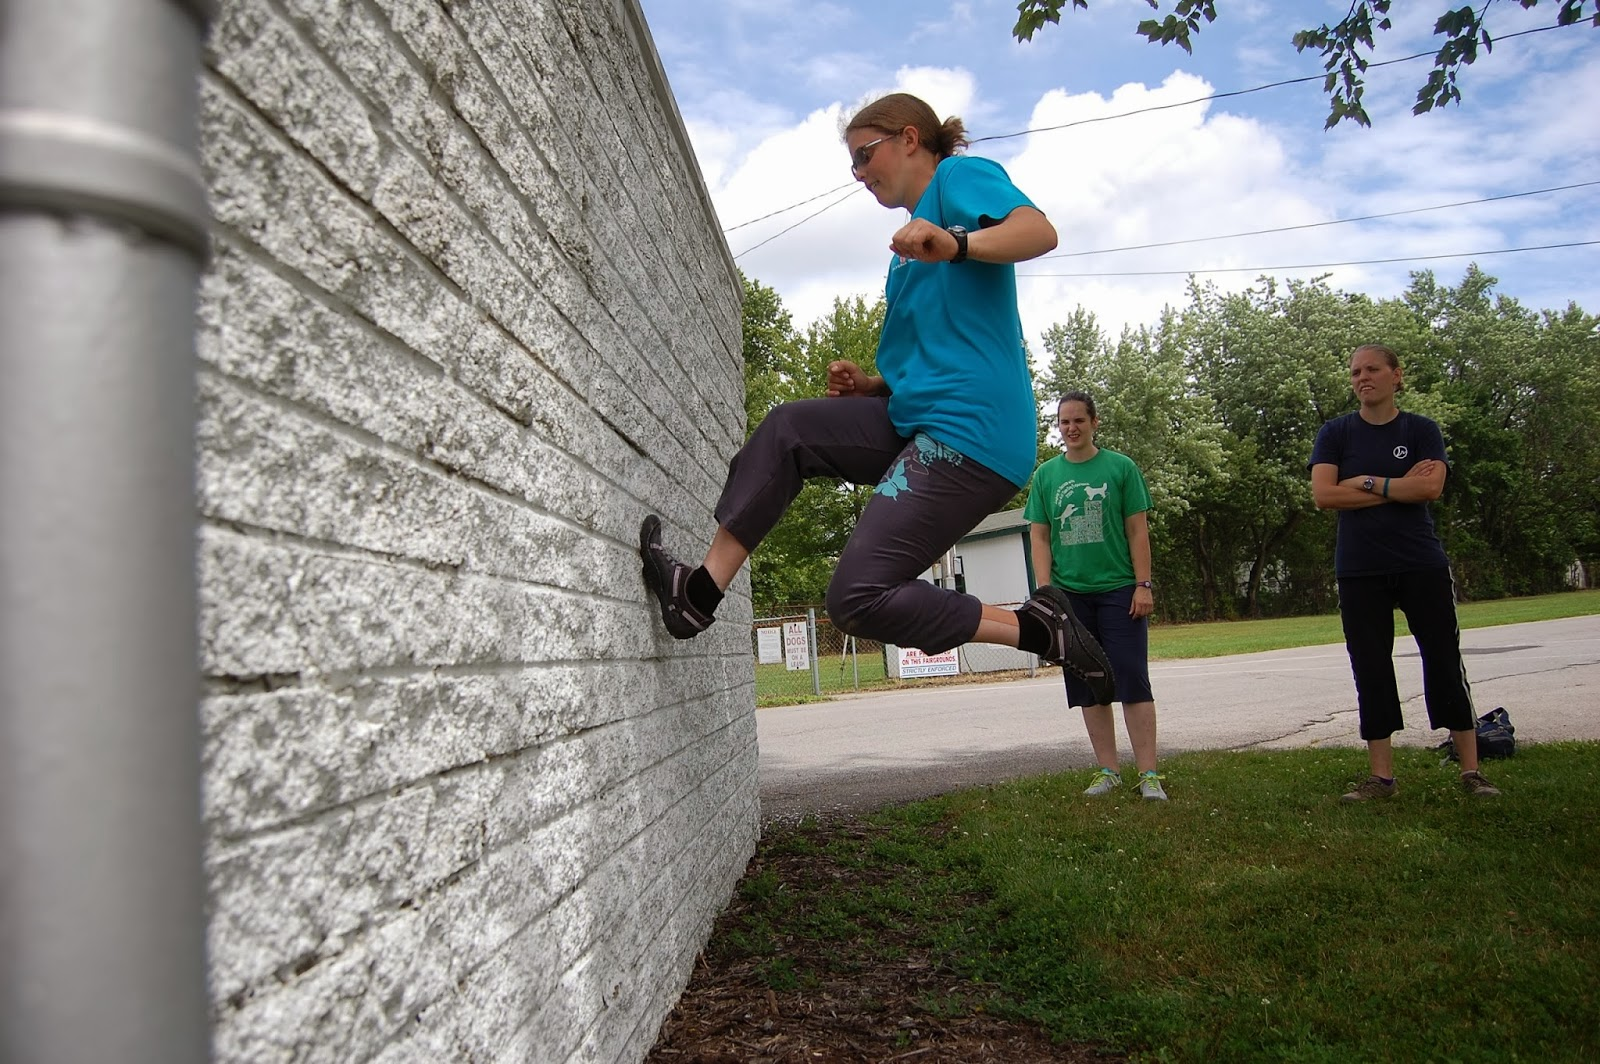 TAGteach: Seven Simple Steps to Getting the Most from Your Parkour ...